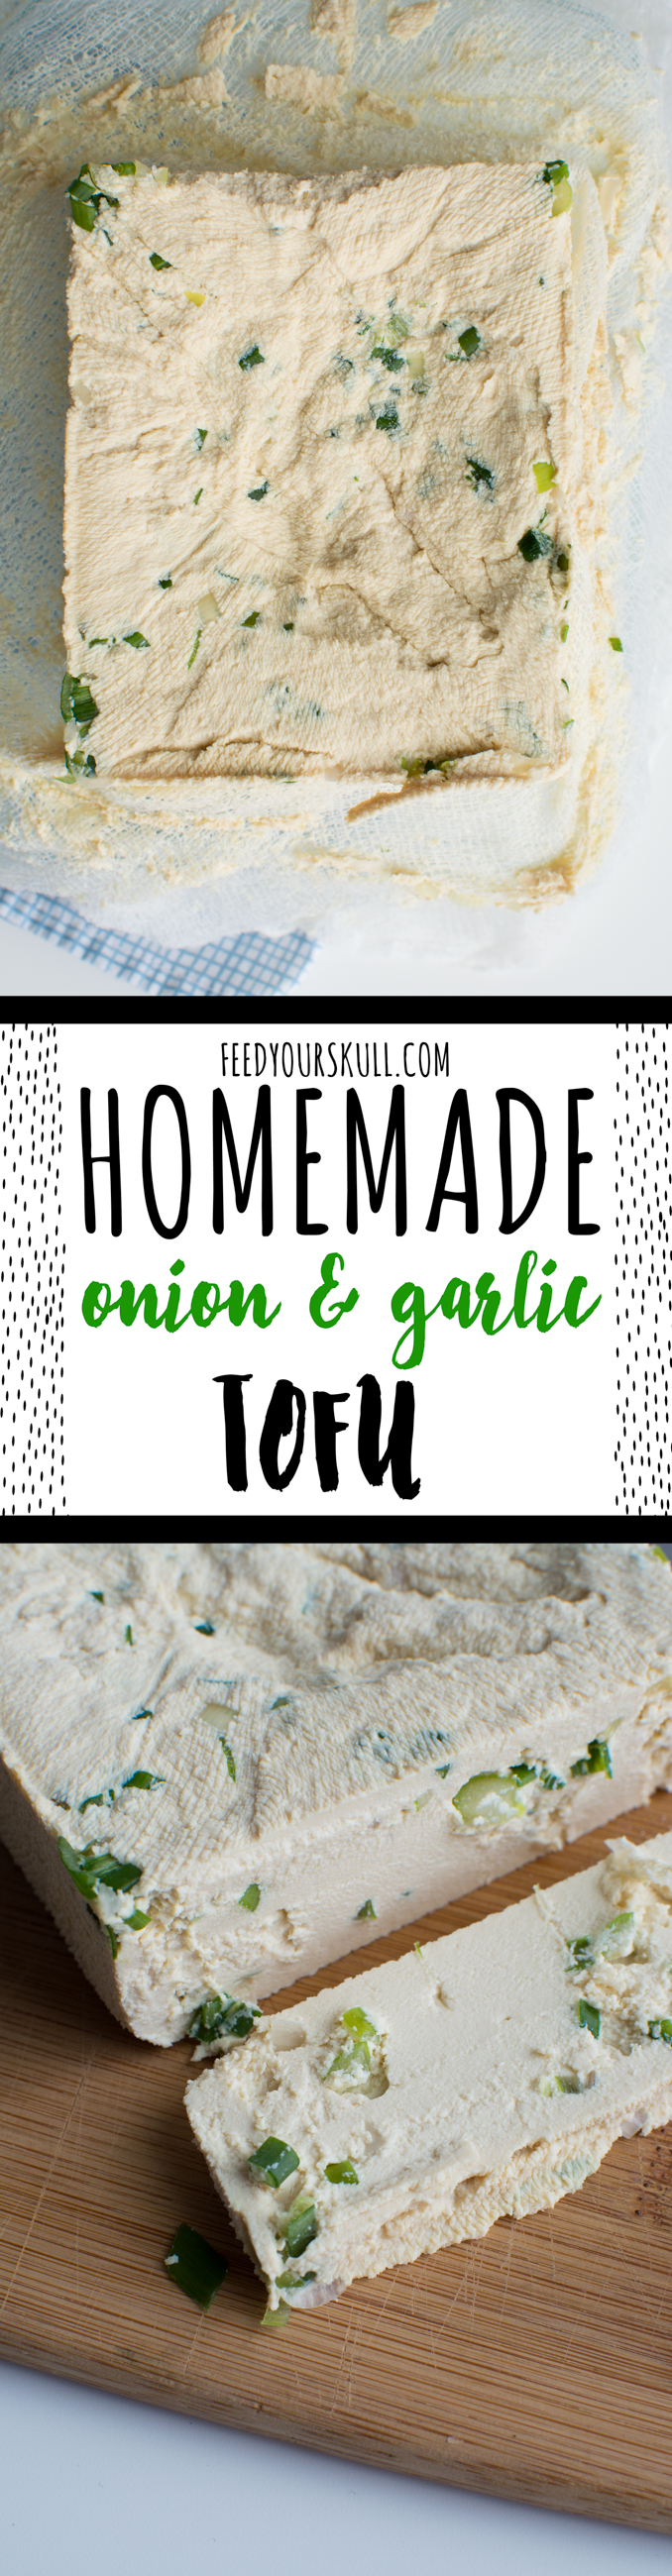 Homemade Onion & Garlic Tofu | Feed Your Skull